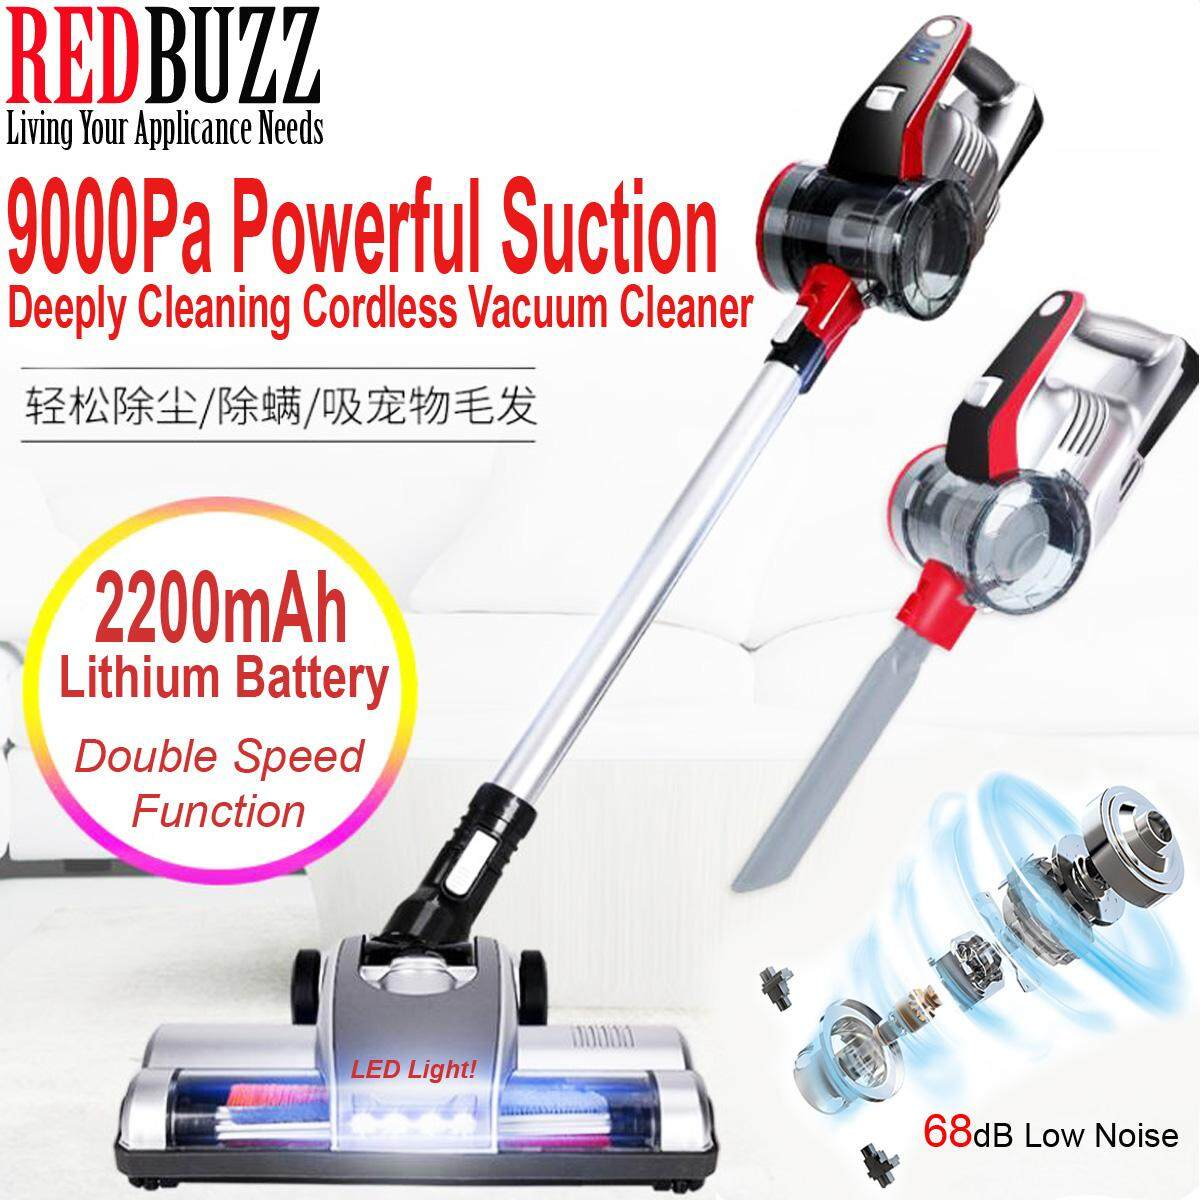 Wireless Cordless Vacuum S1705 9000Pa Powerful Suction Lightweight Cordless Handheld Vacuum Cleaner